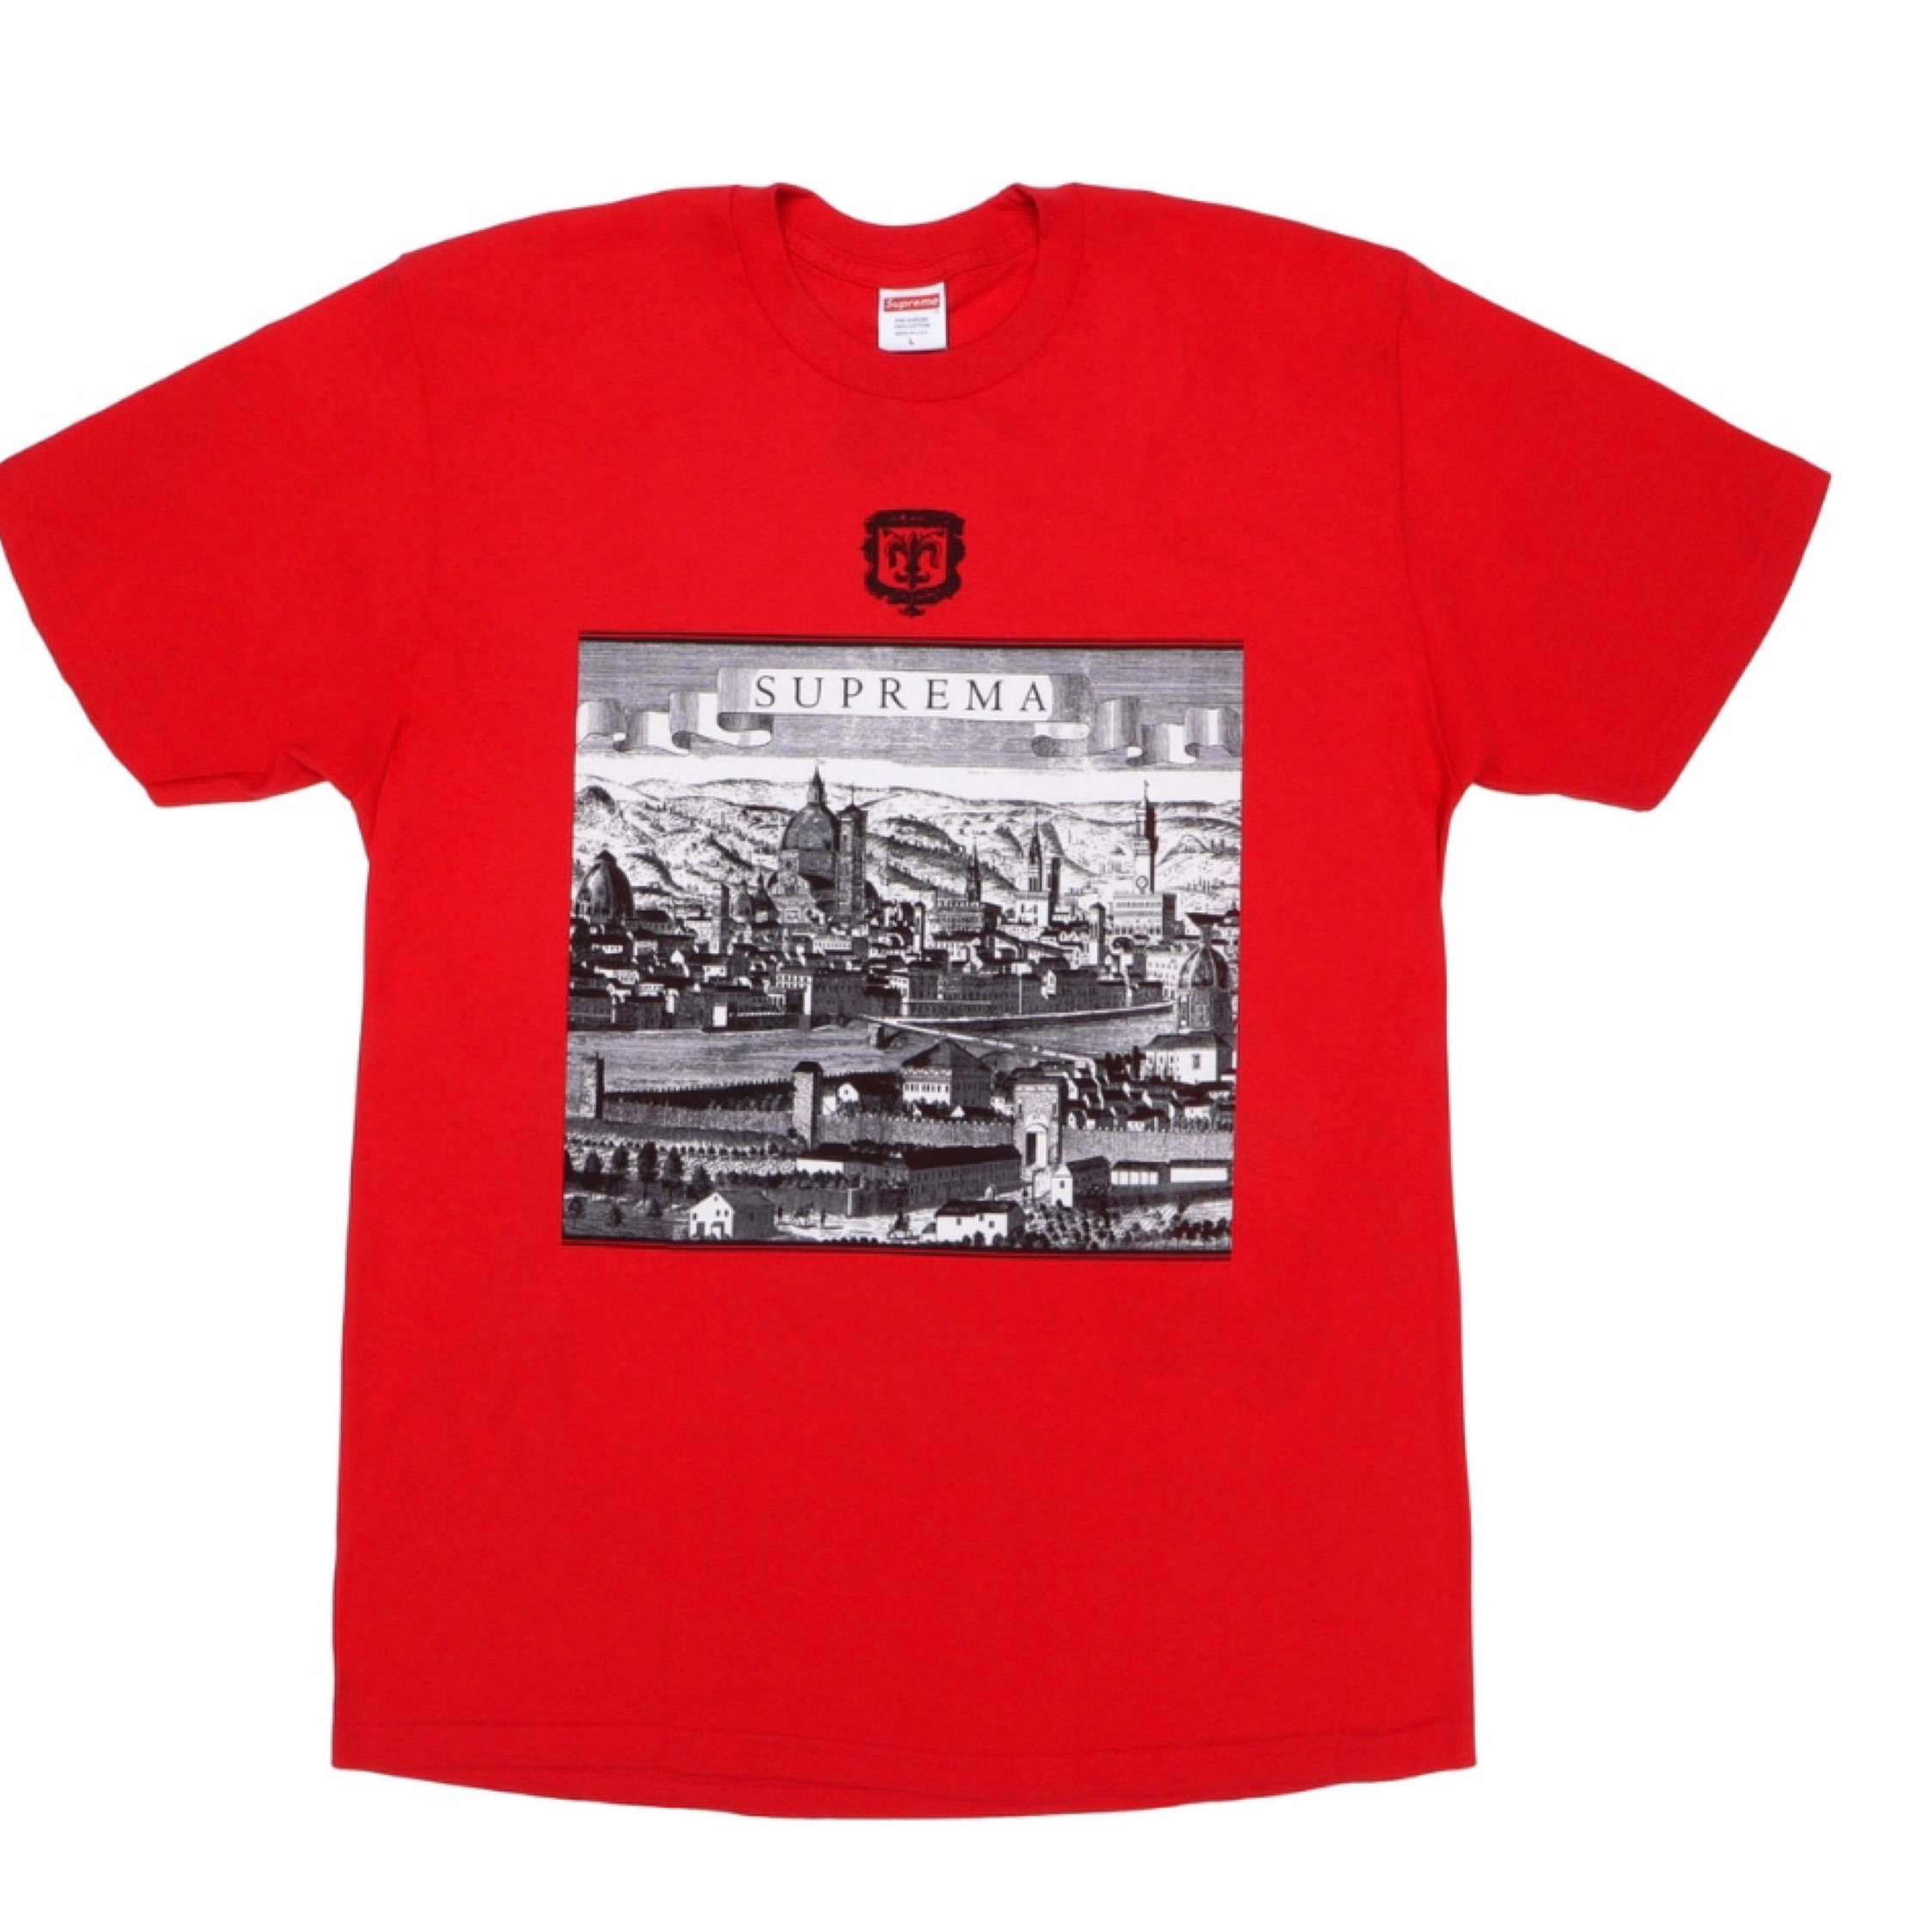 Ds Supreme Red Fiorenza Tee T-Shirt M